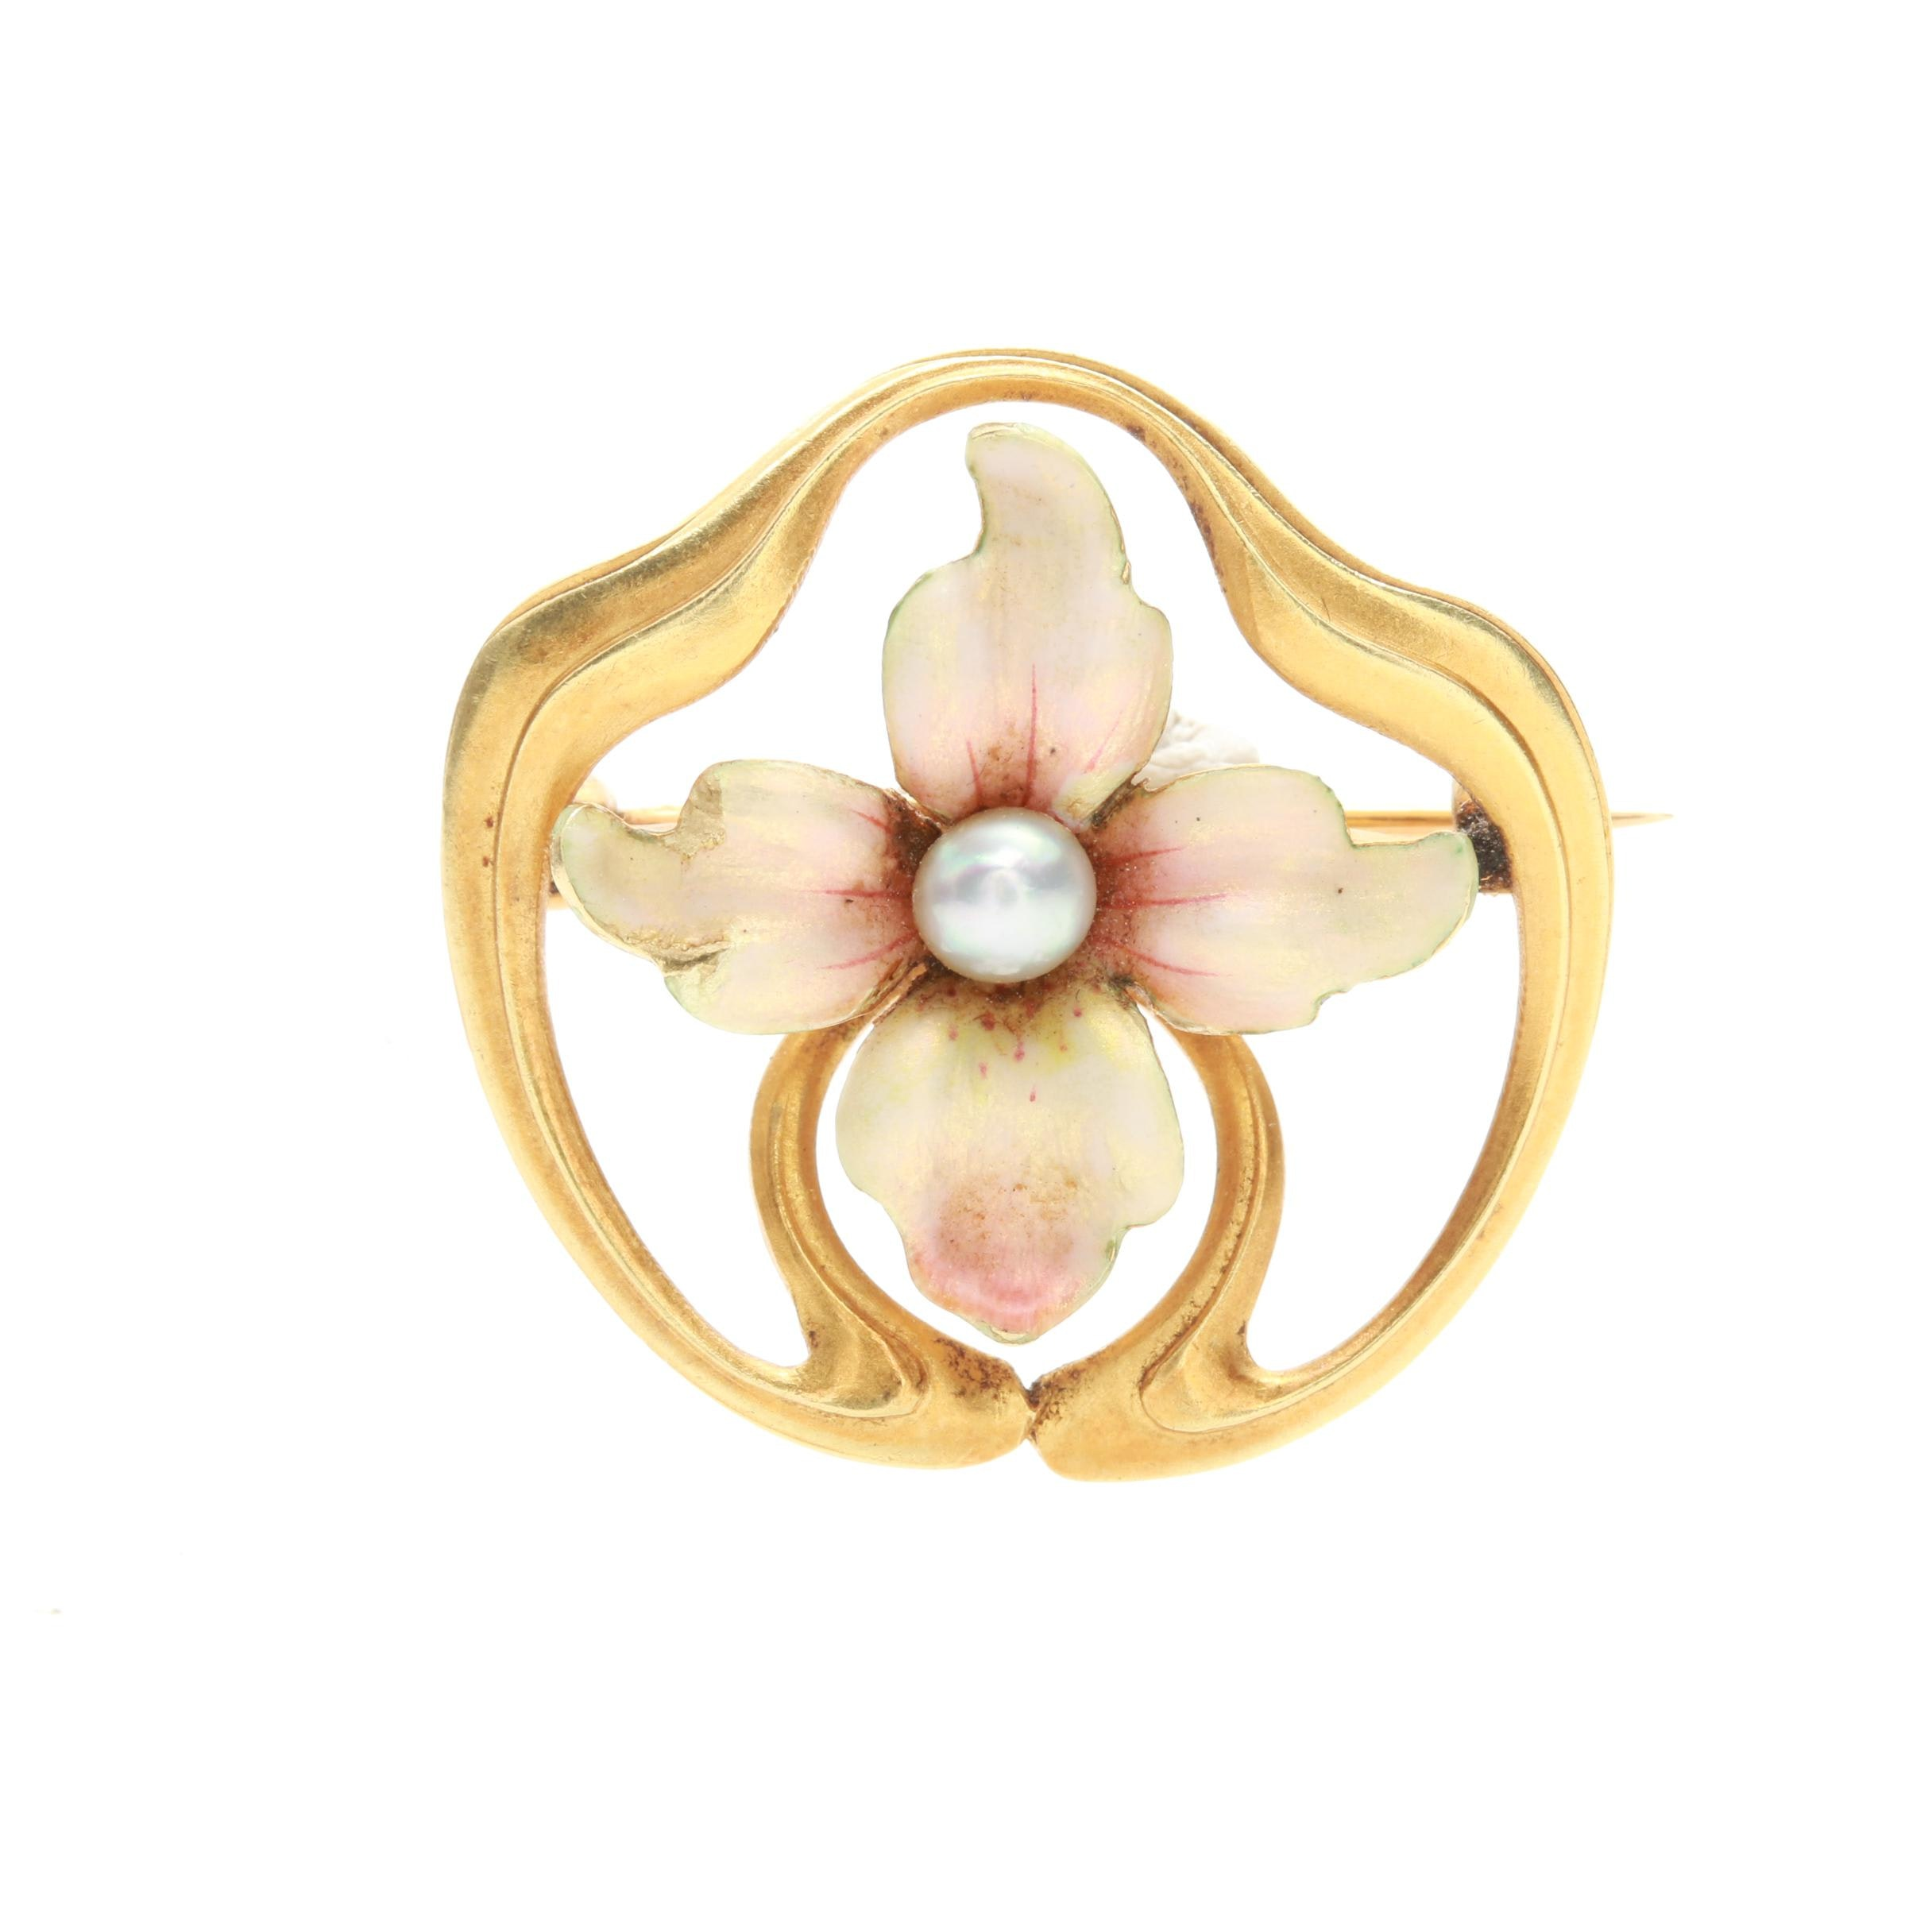 Art Nouveau 14K Yellow Gold Cultured Pearl and Enamel Brooch